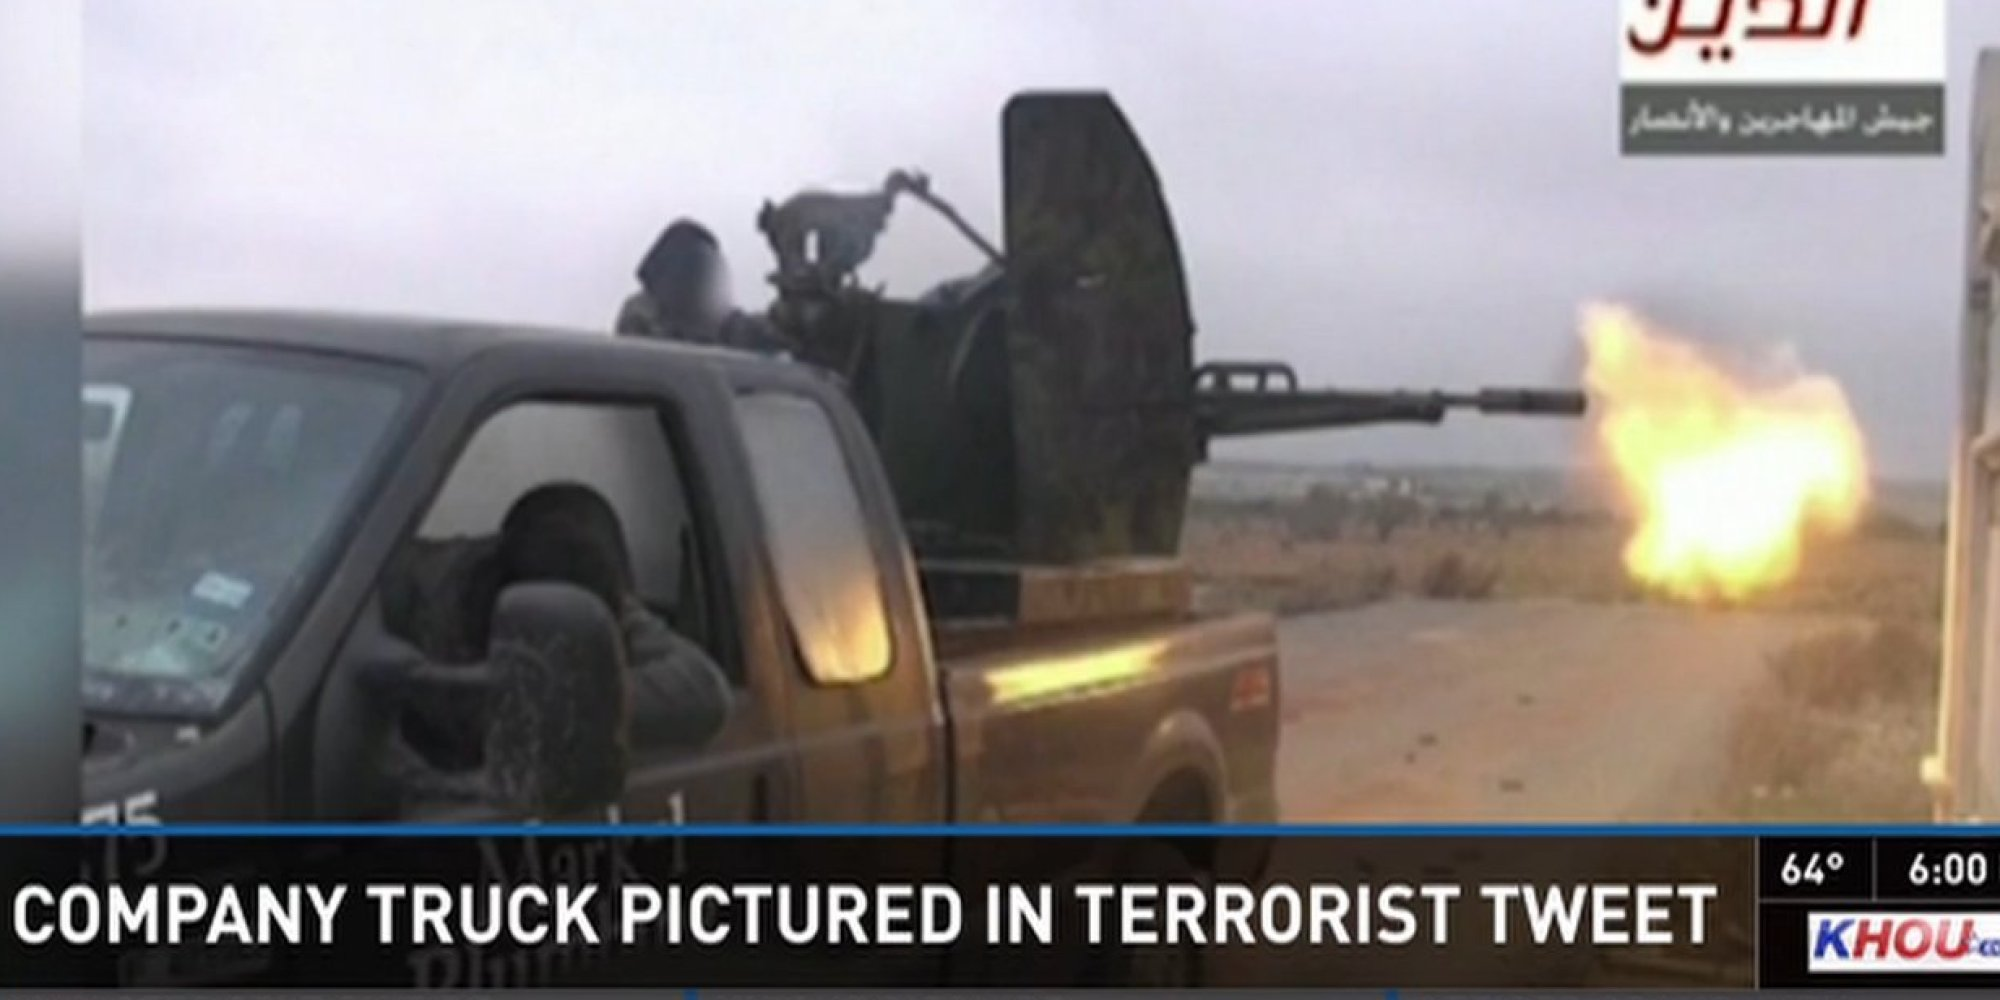 Texas Plumber Isn t Sure How Extremists In Syria Ended Up With His